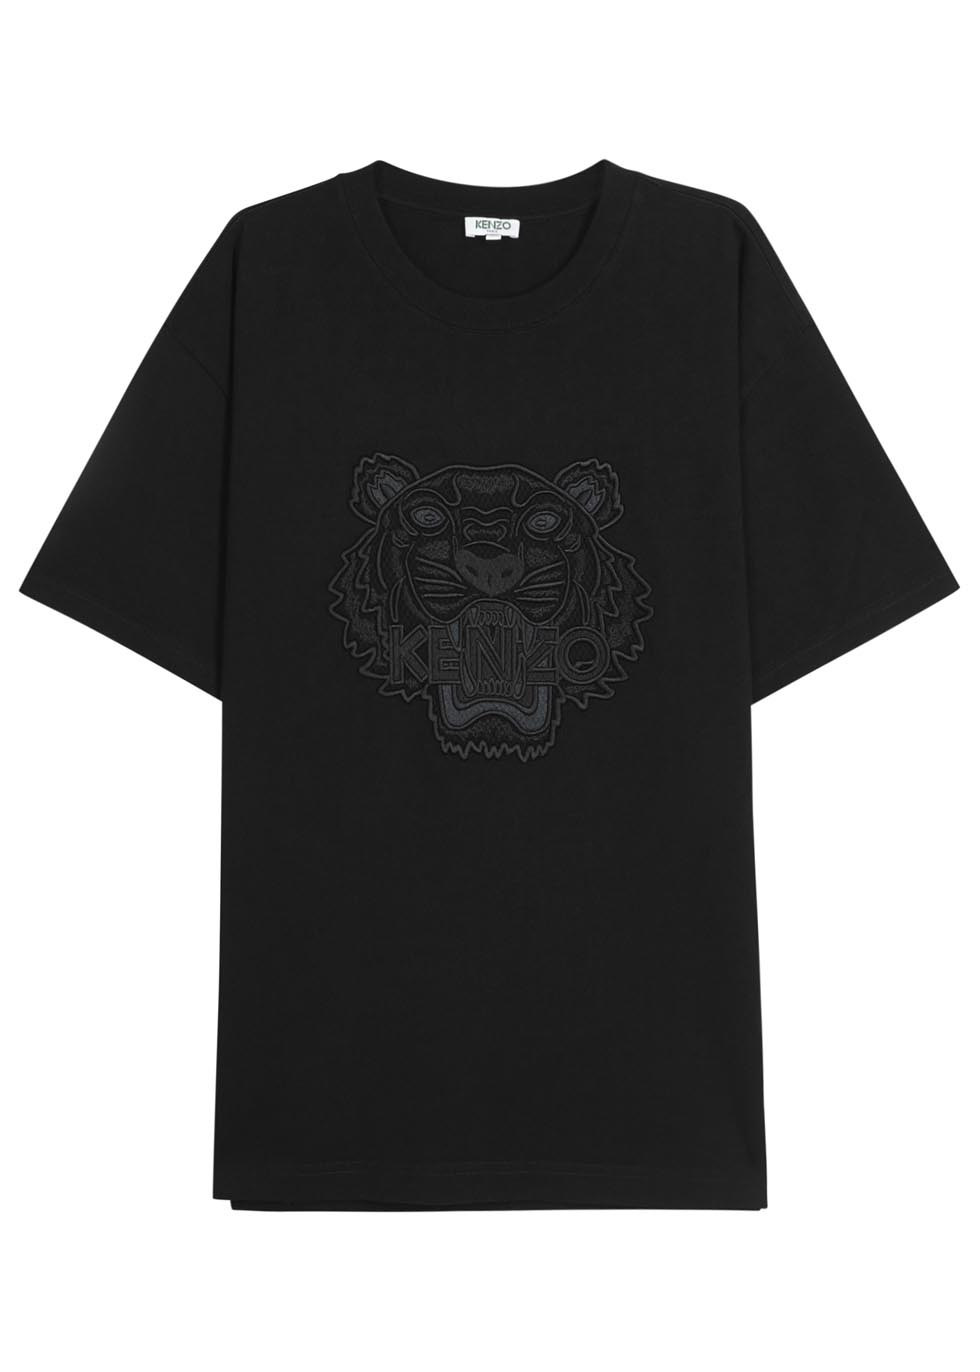 KENZO Black Tiger-embroidered Cotton T-shirt in Black for Men - Lyst c54a6694f